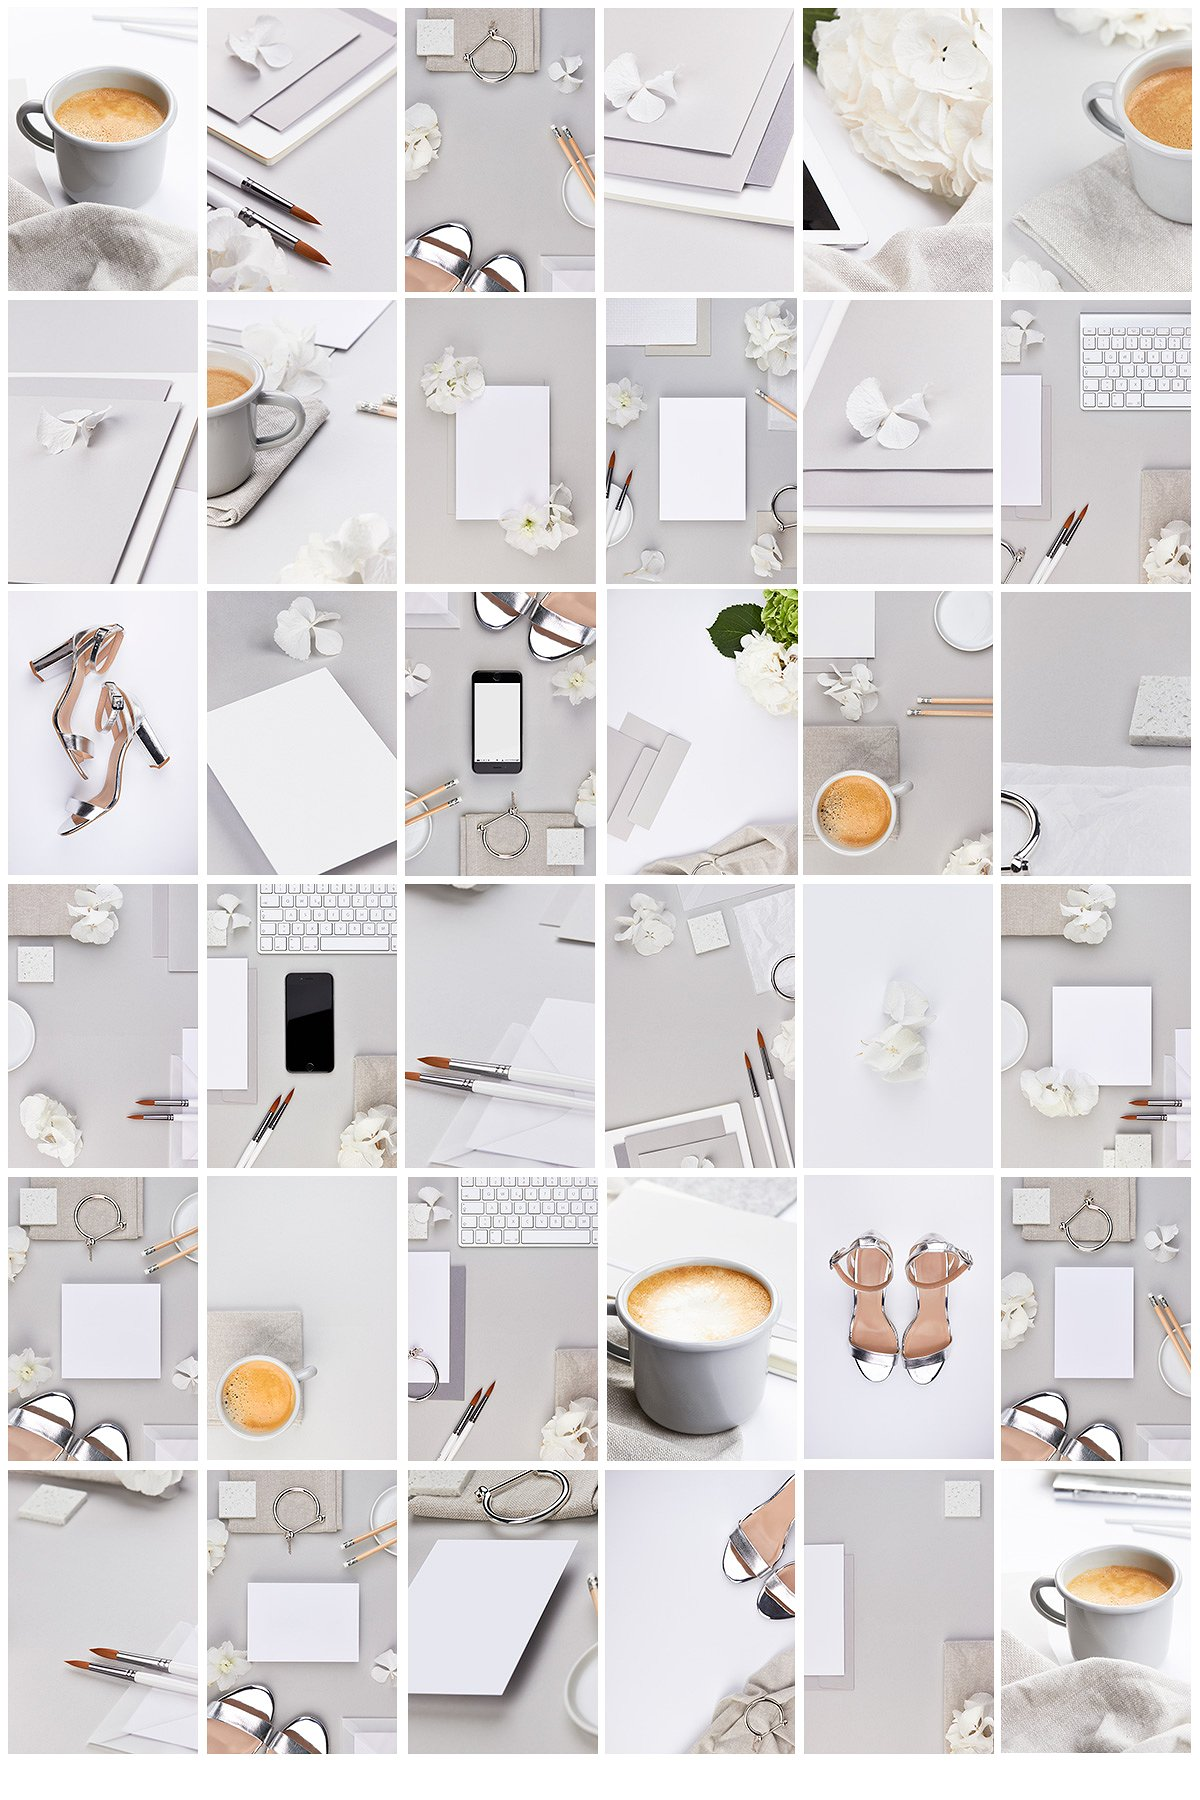 04-bundle-stock-image-mockup-collection-social-media-fashion-blogger-light-grey-sophisticated-white-silver-